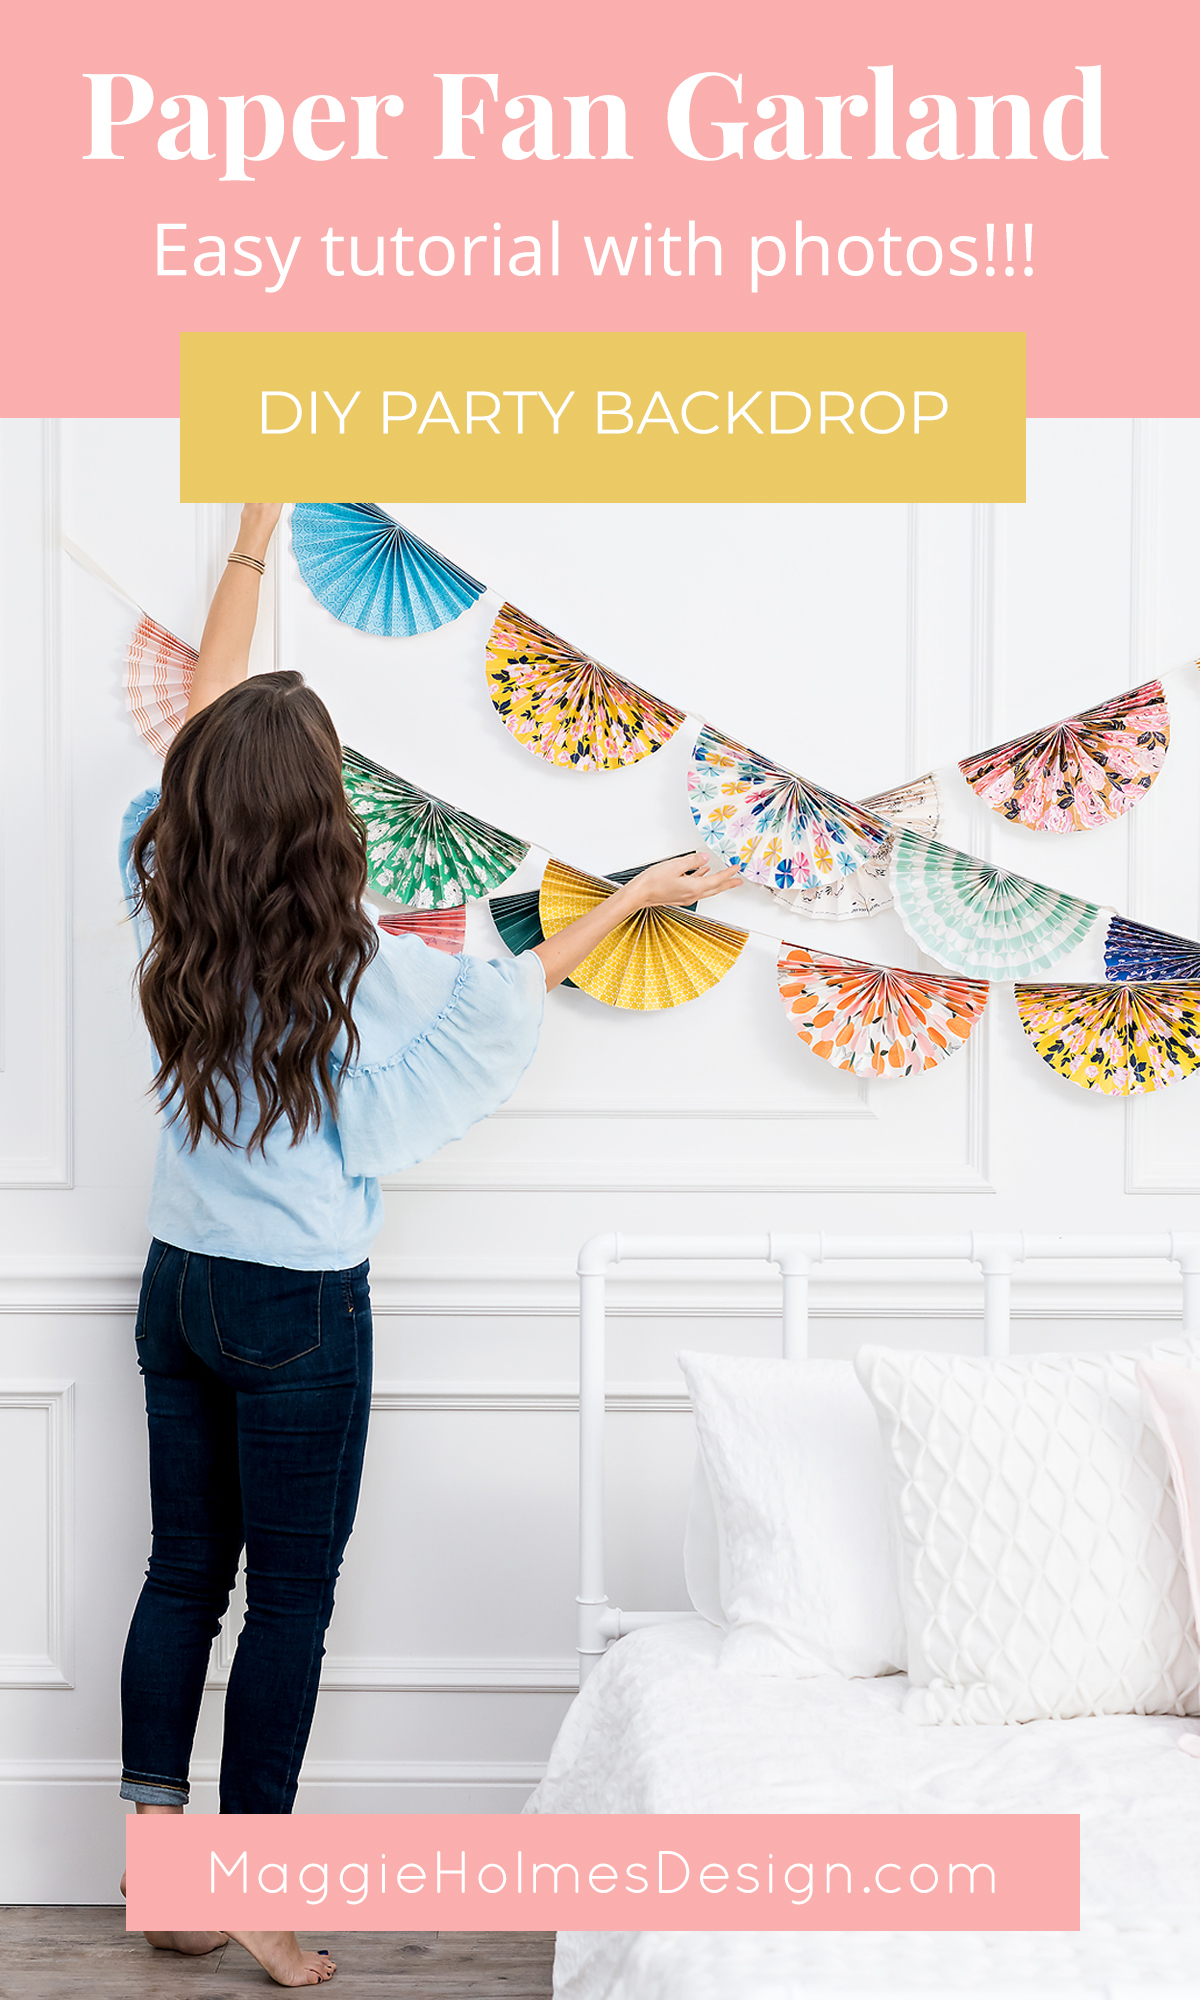 How to Make Paper Fan Party Decorations » Maggie Holmes Design